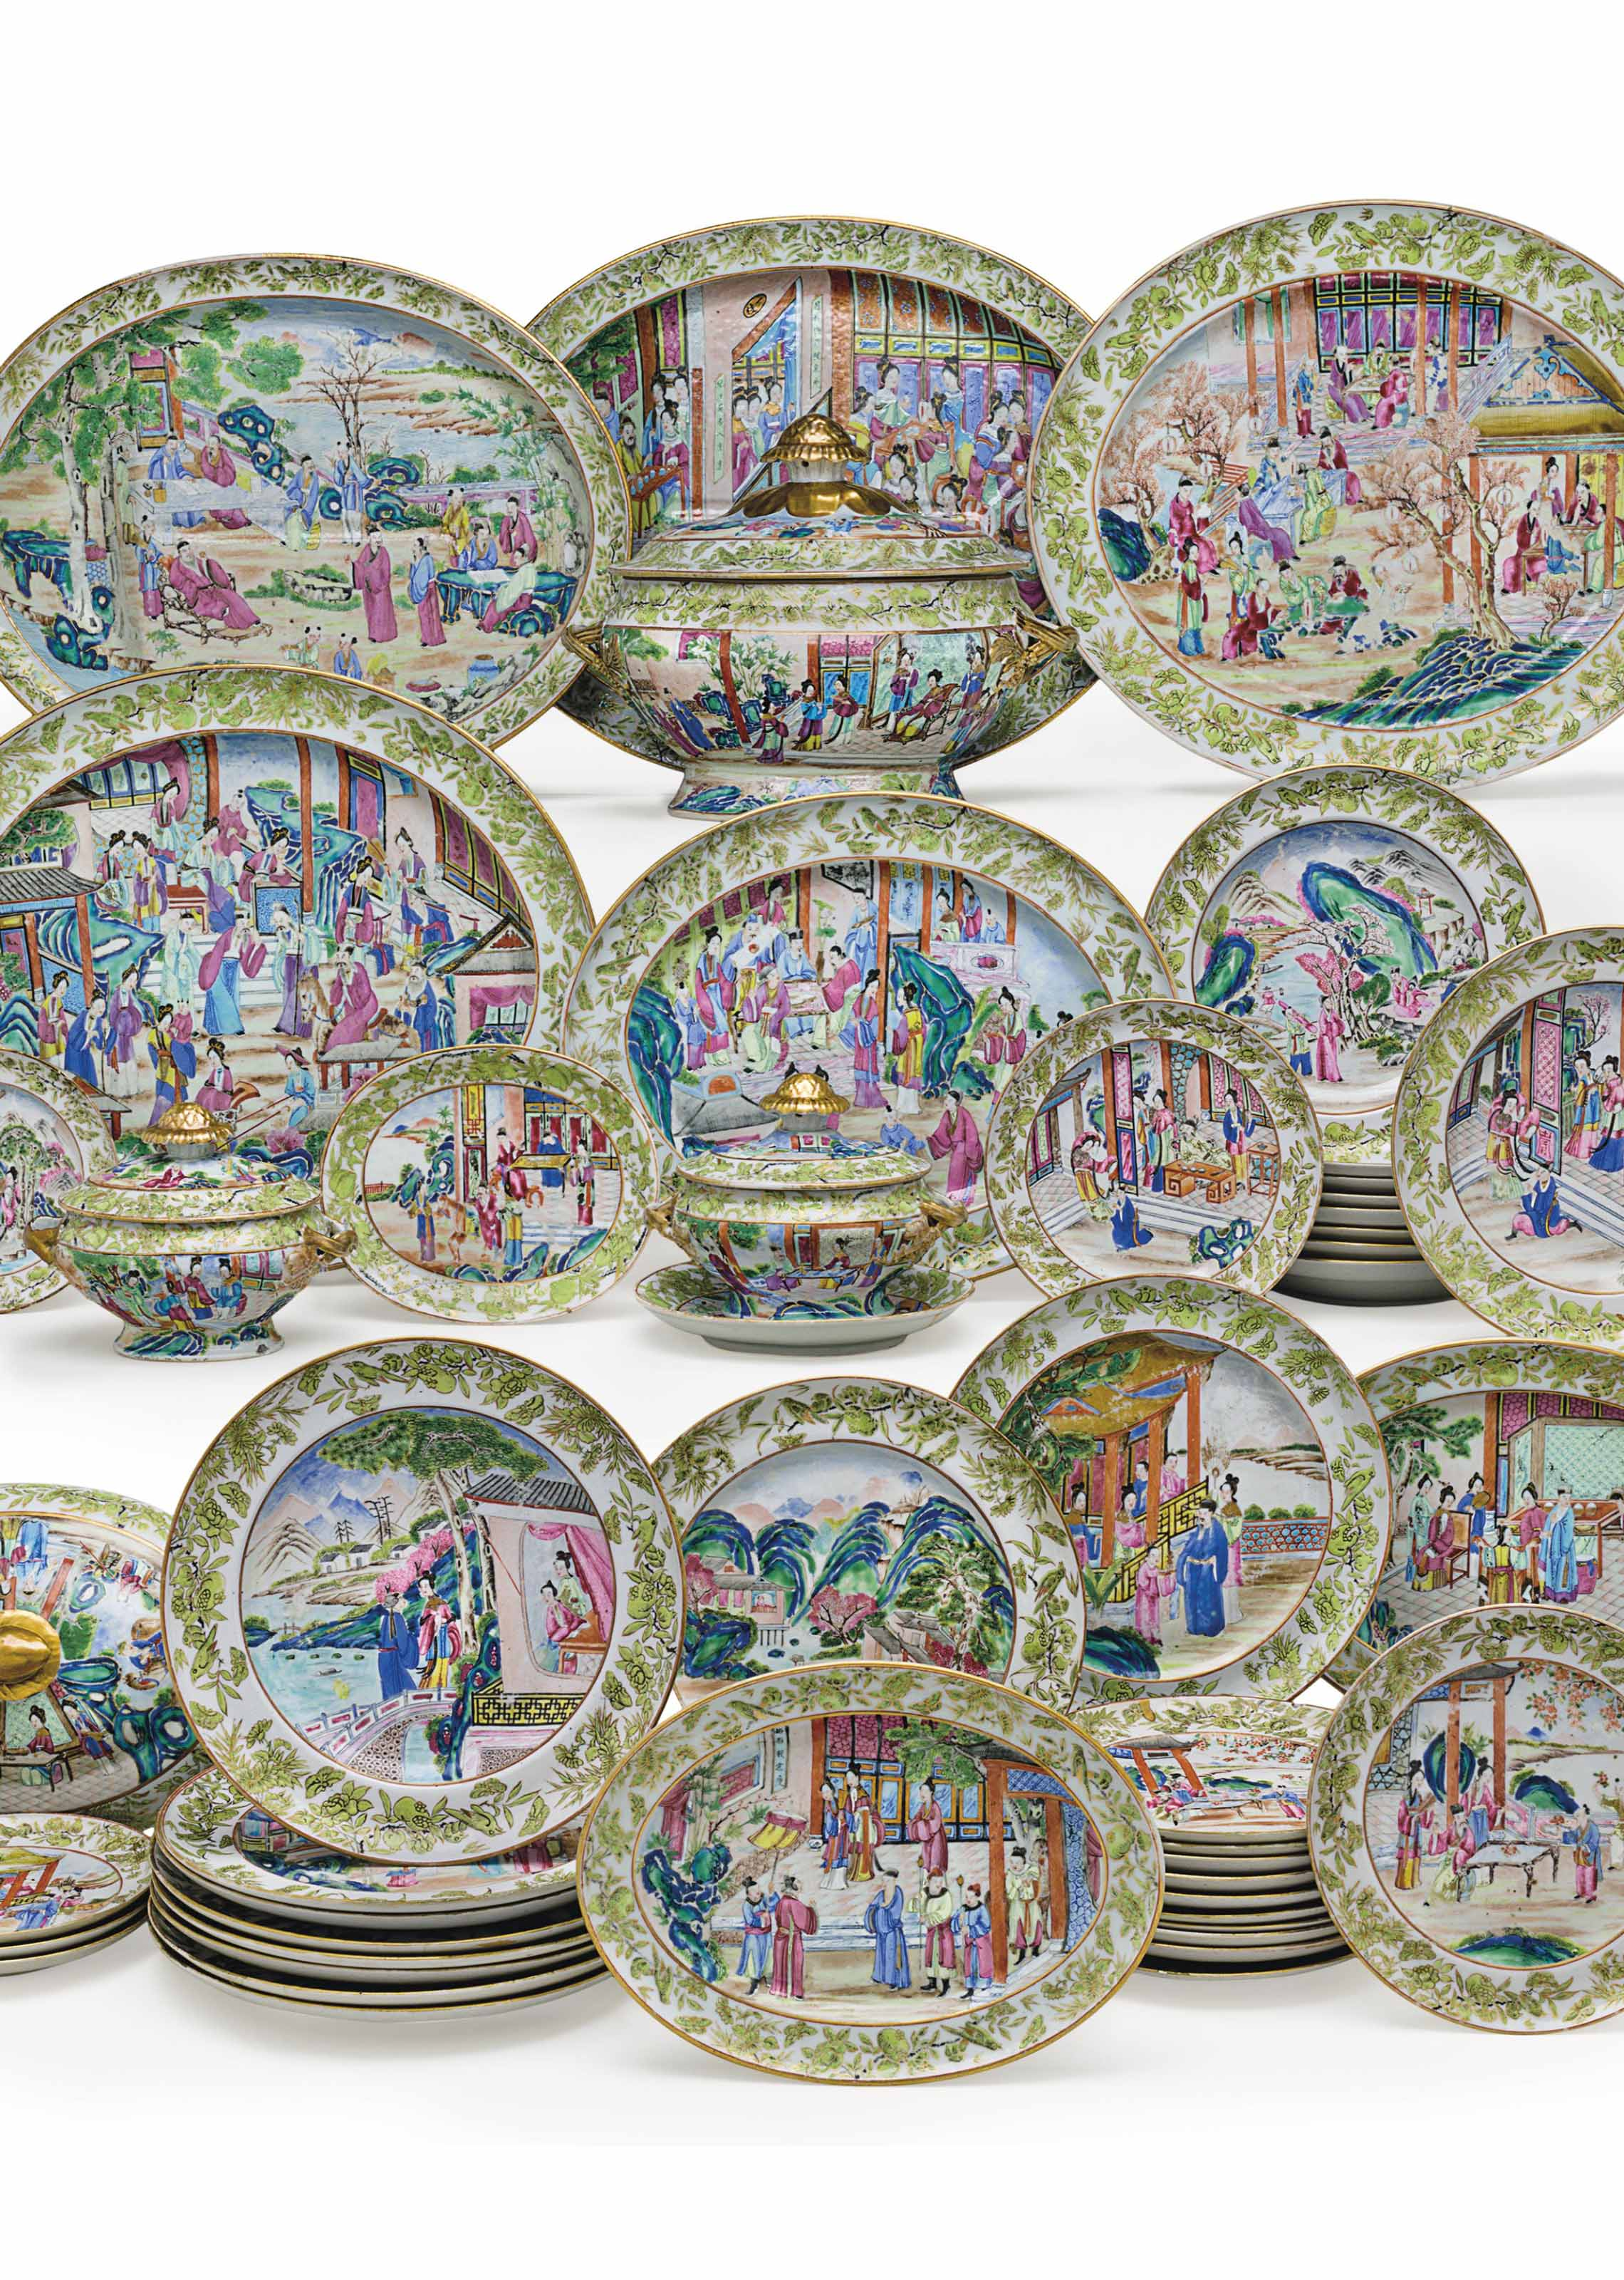 A CHINESE EXPORT PORCELAIN 'CANTON FAMILLE ROSE' DINNER SERVICE